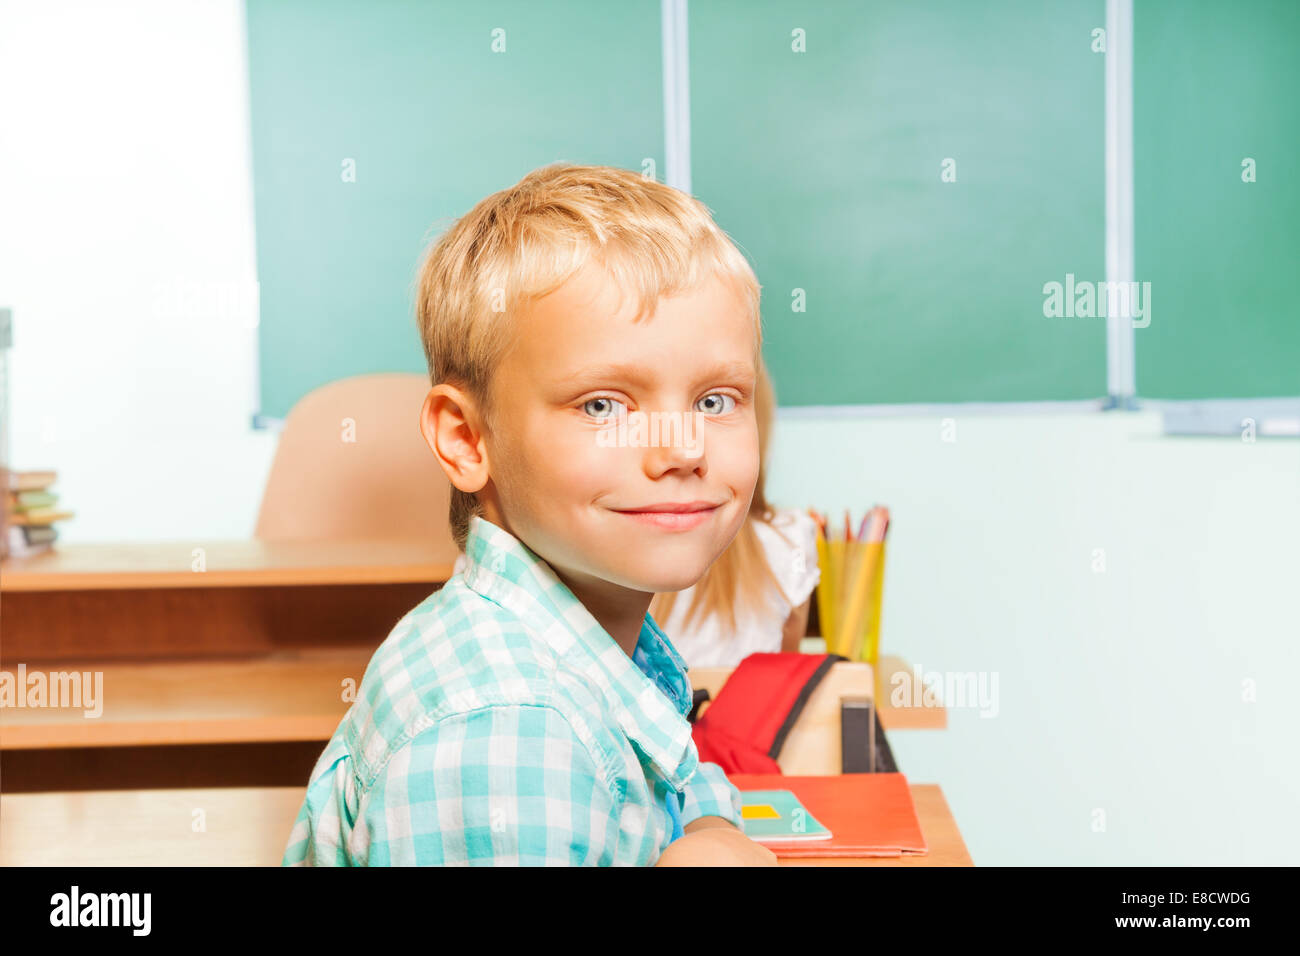 Smiling boy sits at desk with blackboard behind - Stock Image